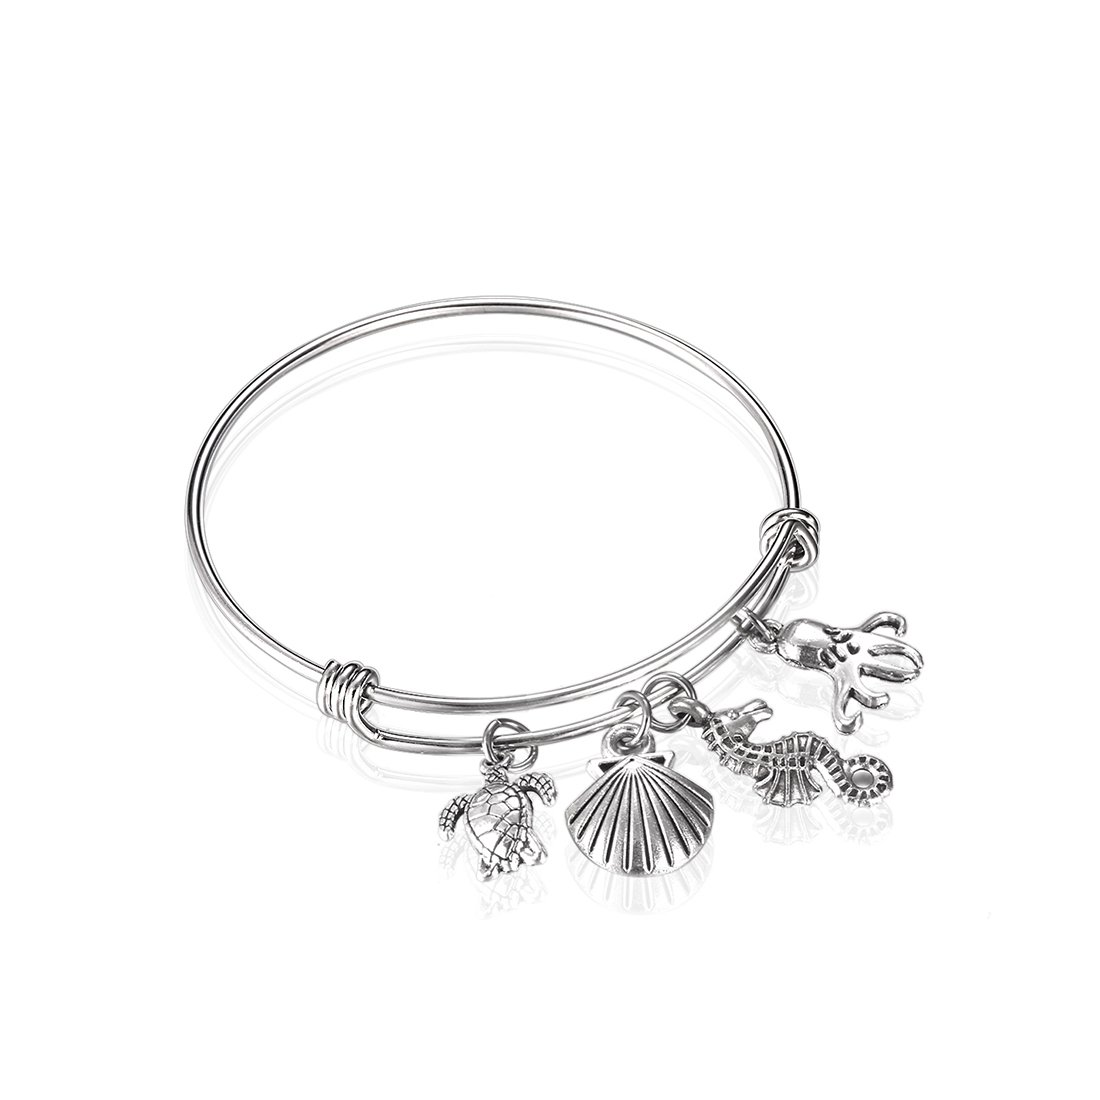 Sea Animals Ocean Charm Bracelet Love the Sea Summer Gift (Silver)